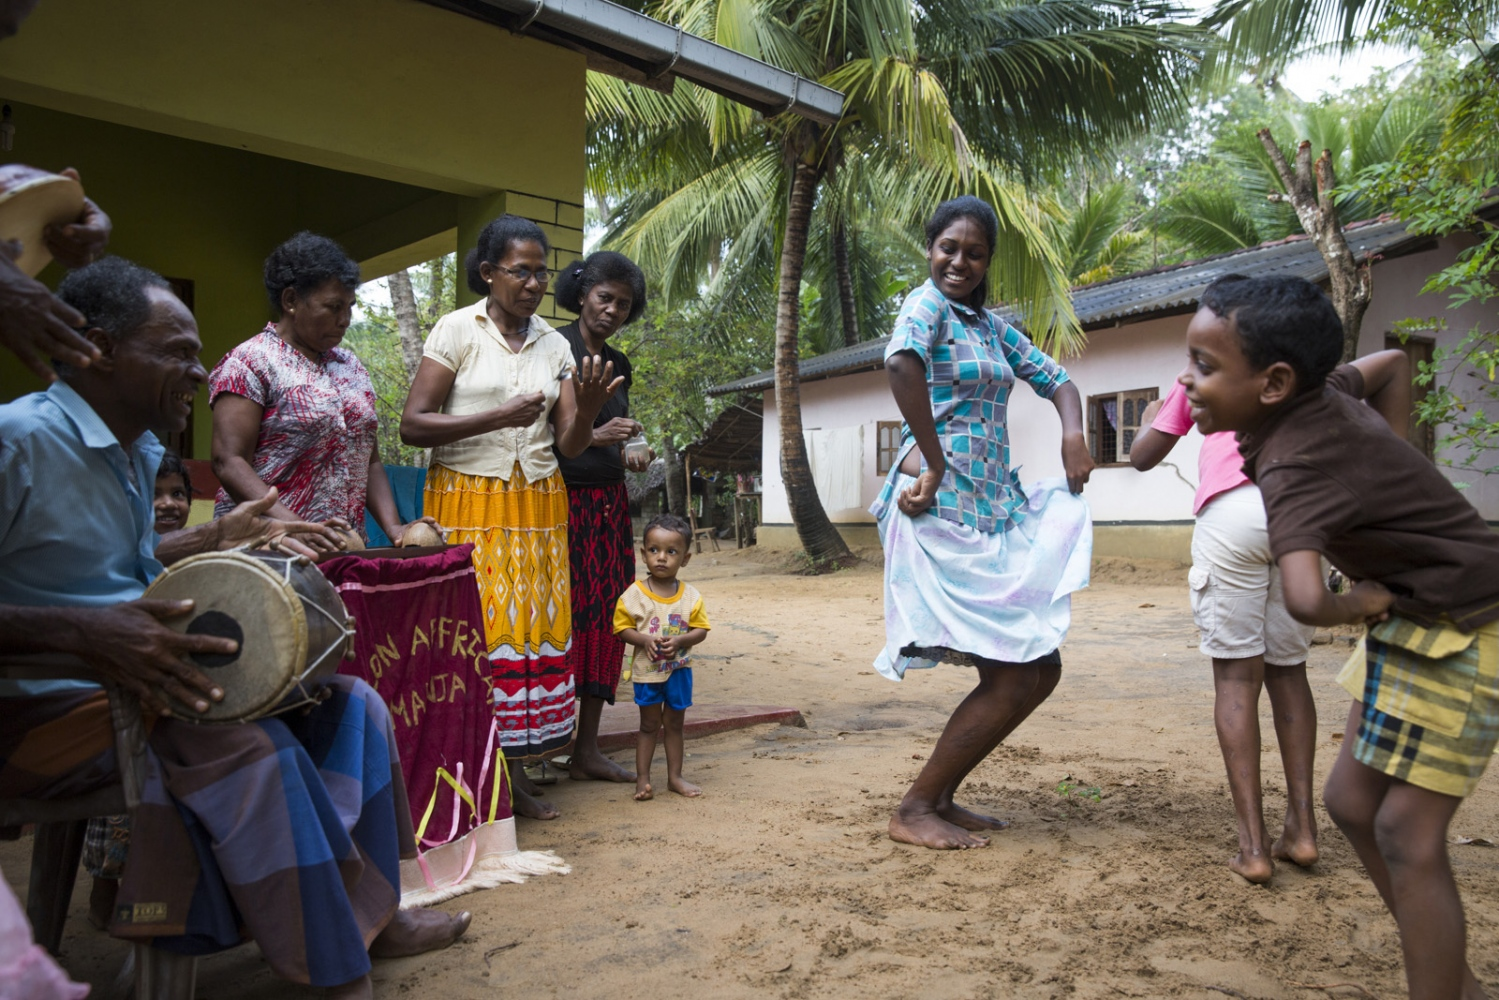 Neighbours performs a small music and dance practise in the village of Sirambadiya. Music and dance of this communtiy still follows African tradition and their songs are still sung in Sri Lankan Creole language.